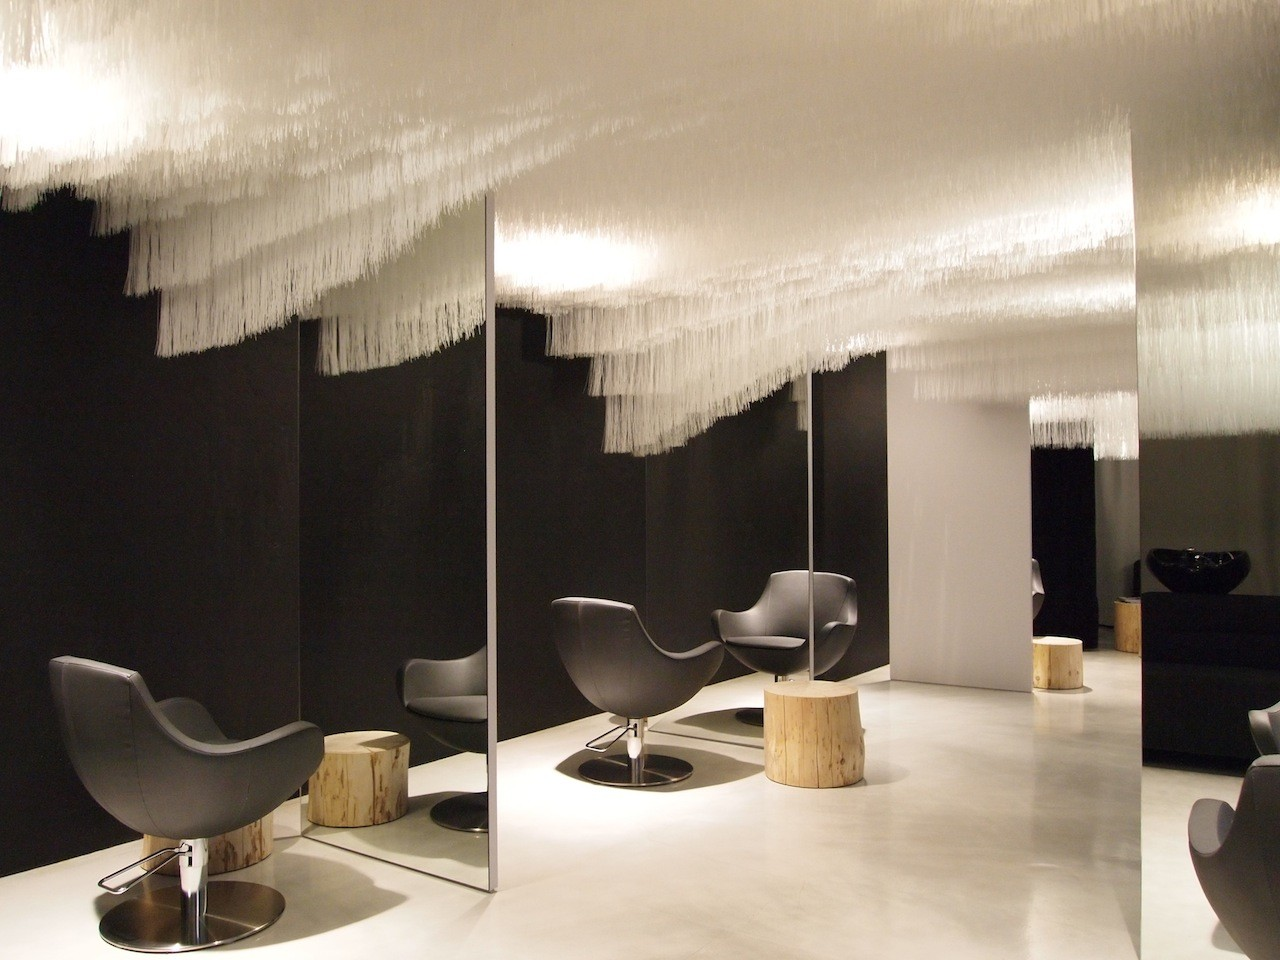 Refurbishment of Boa Hairdresser's Salon / Claudia Meier, © Claudia Meier